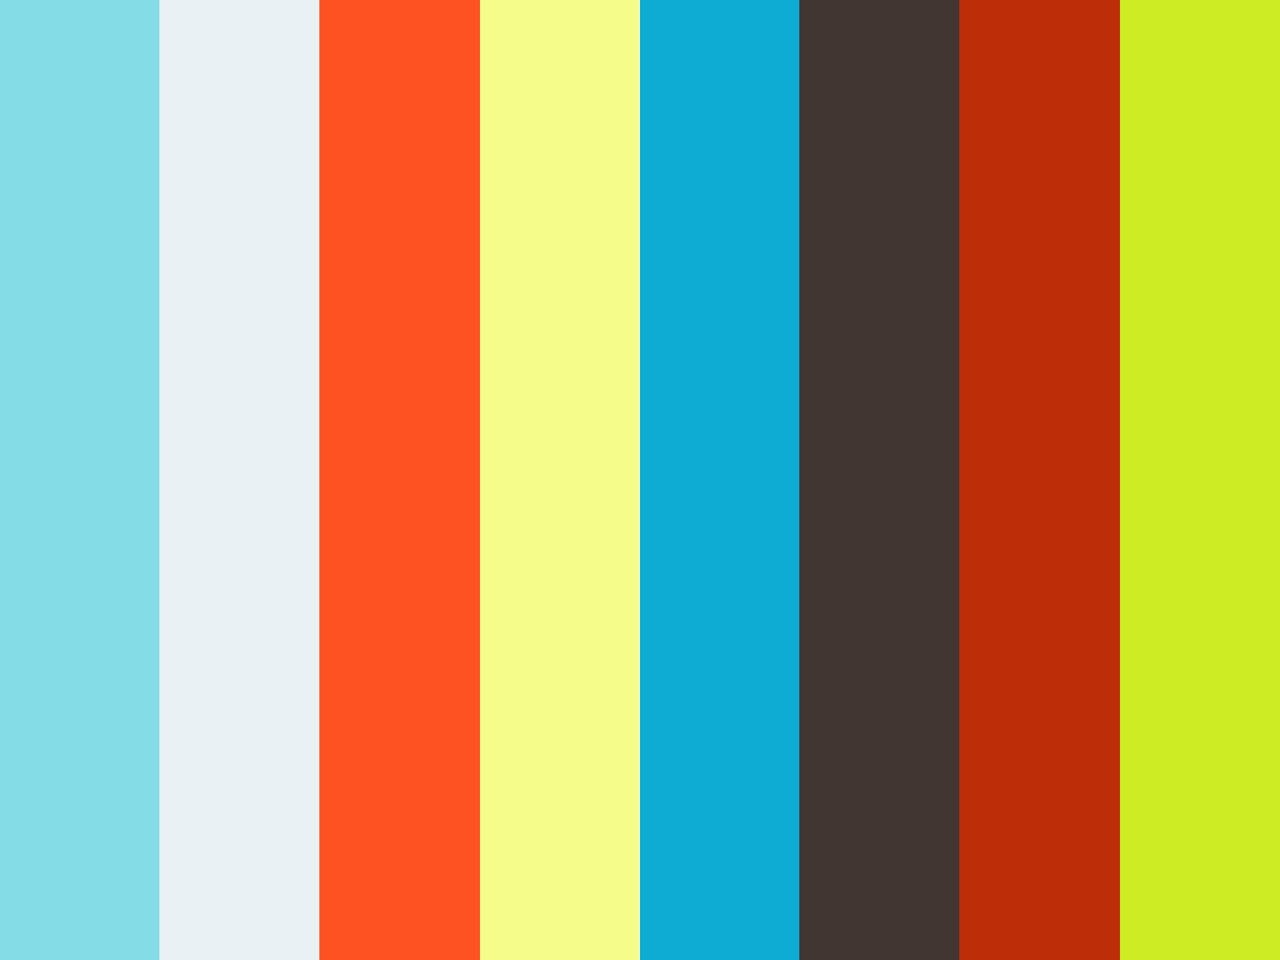 exercising at the gates